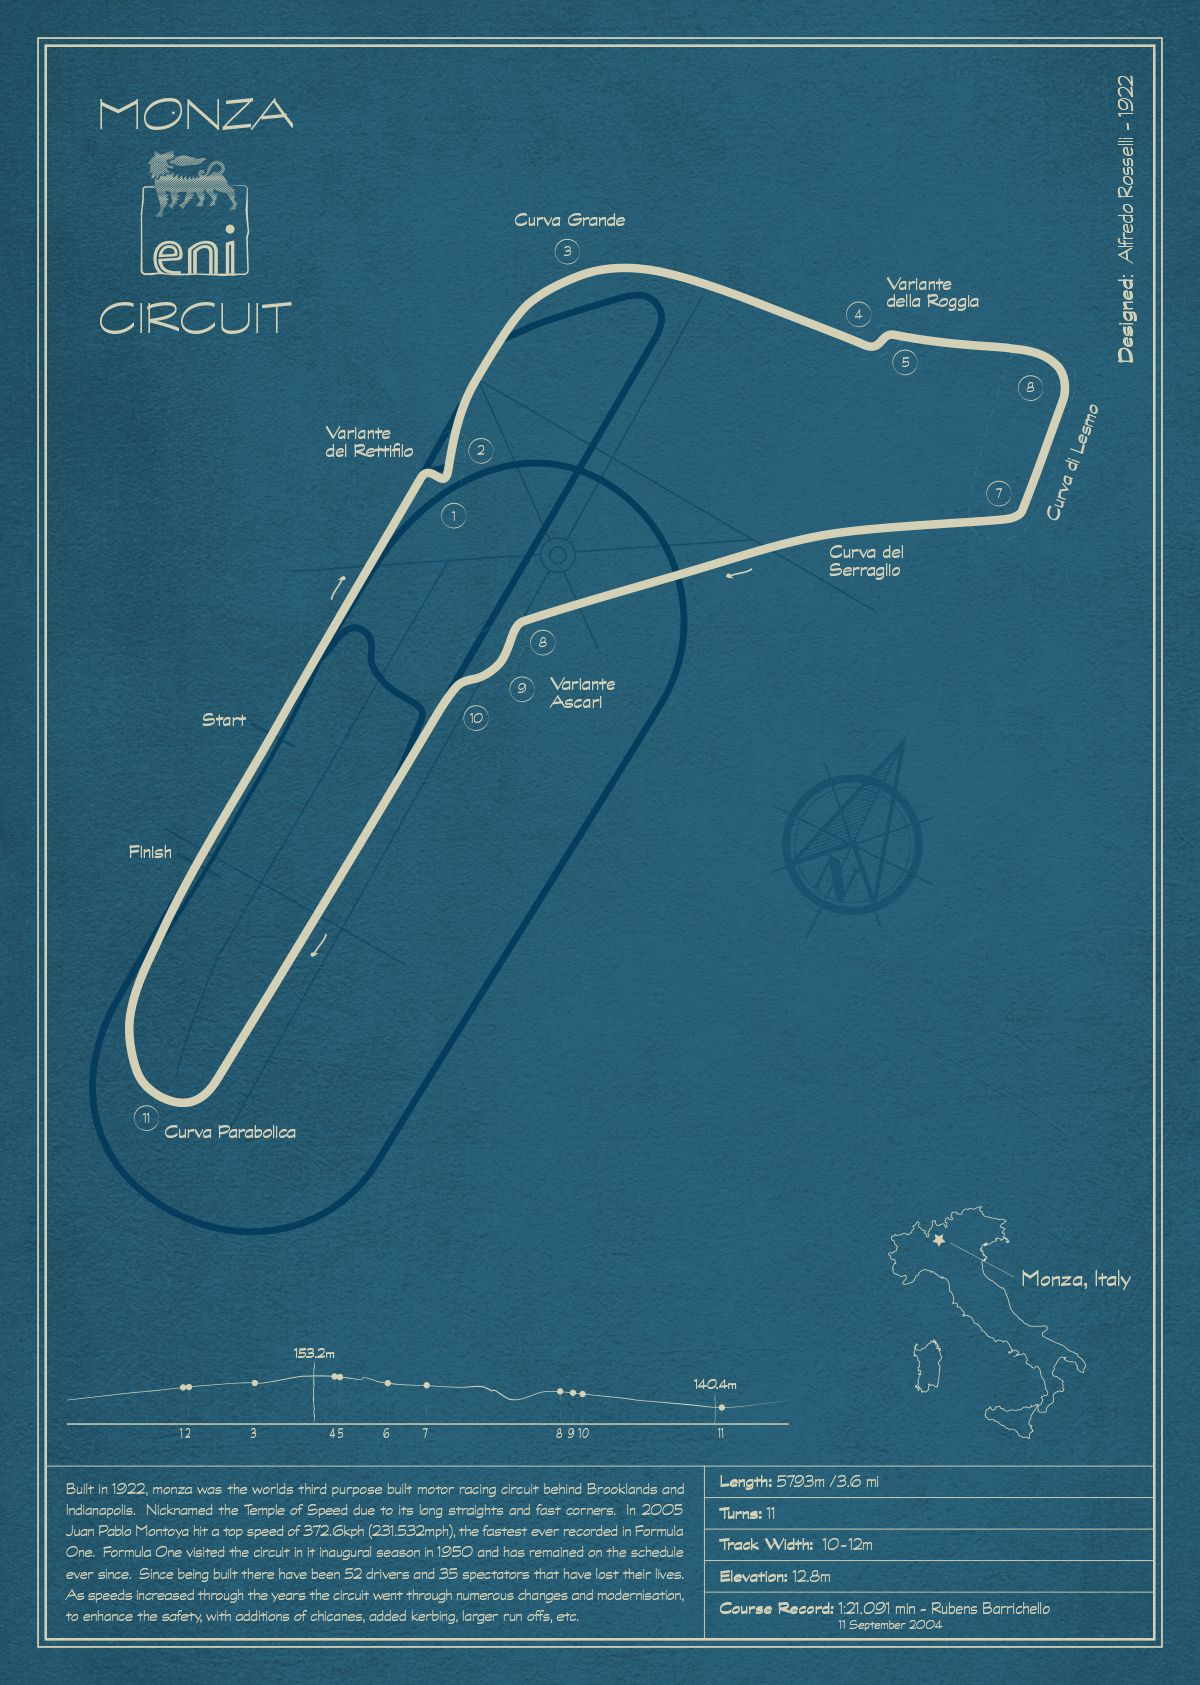 Monza Eni Circuit Art Print By Peter Dials Racing Maps Wiring Diagram For 1976 Chevy Fuel Pump Track Map Blueprint